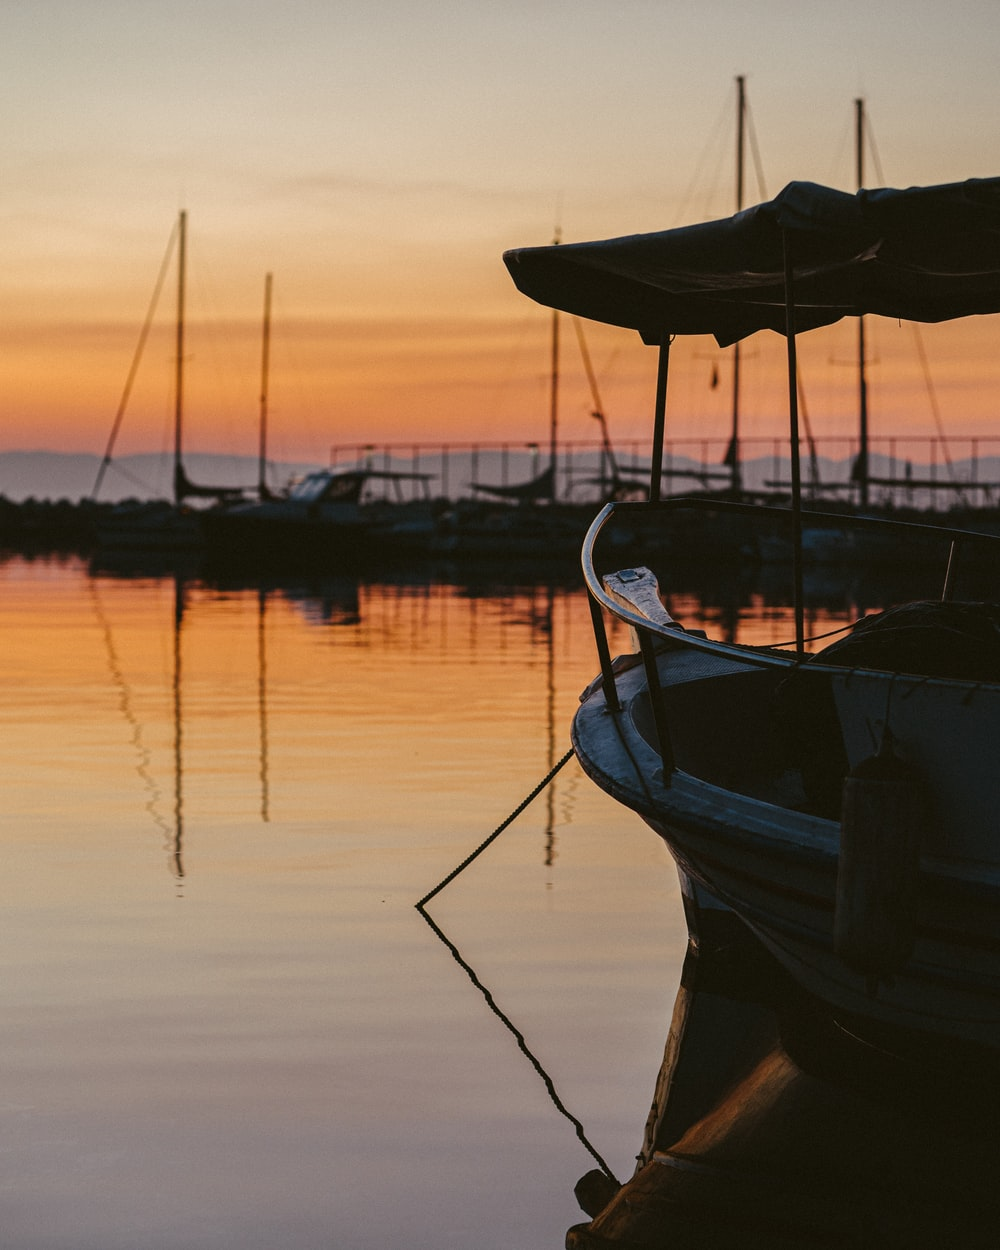 blue and brown boat on water during sunset